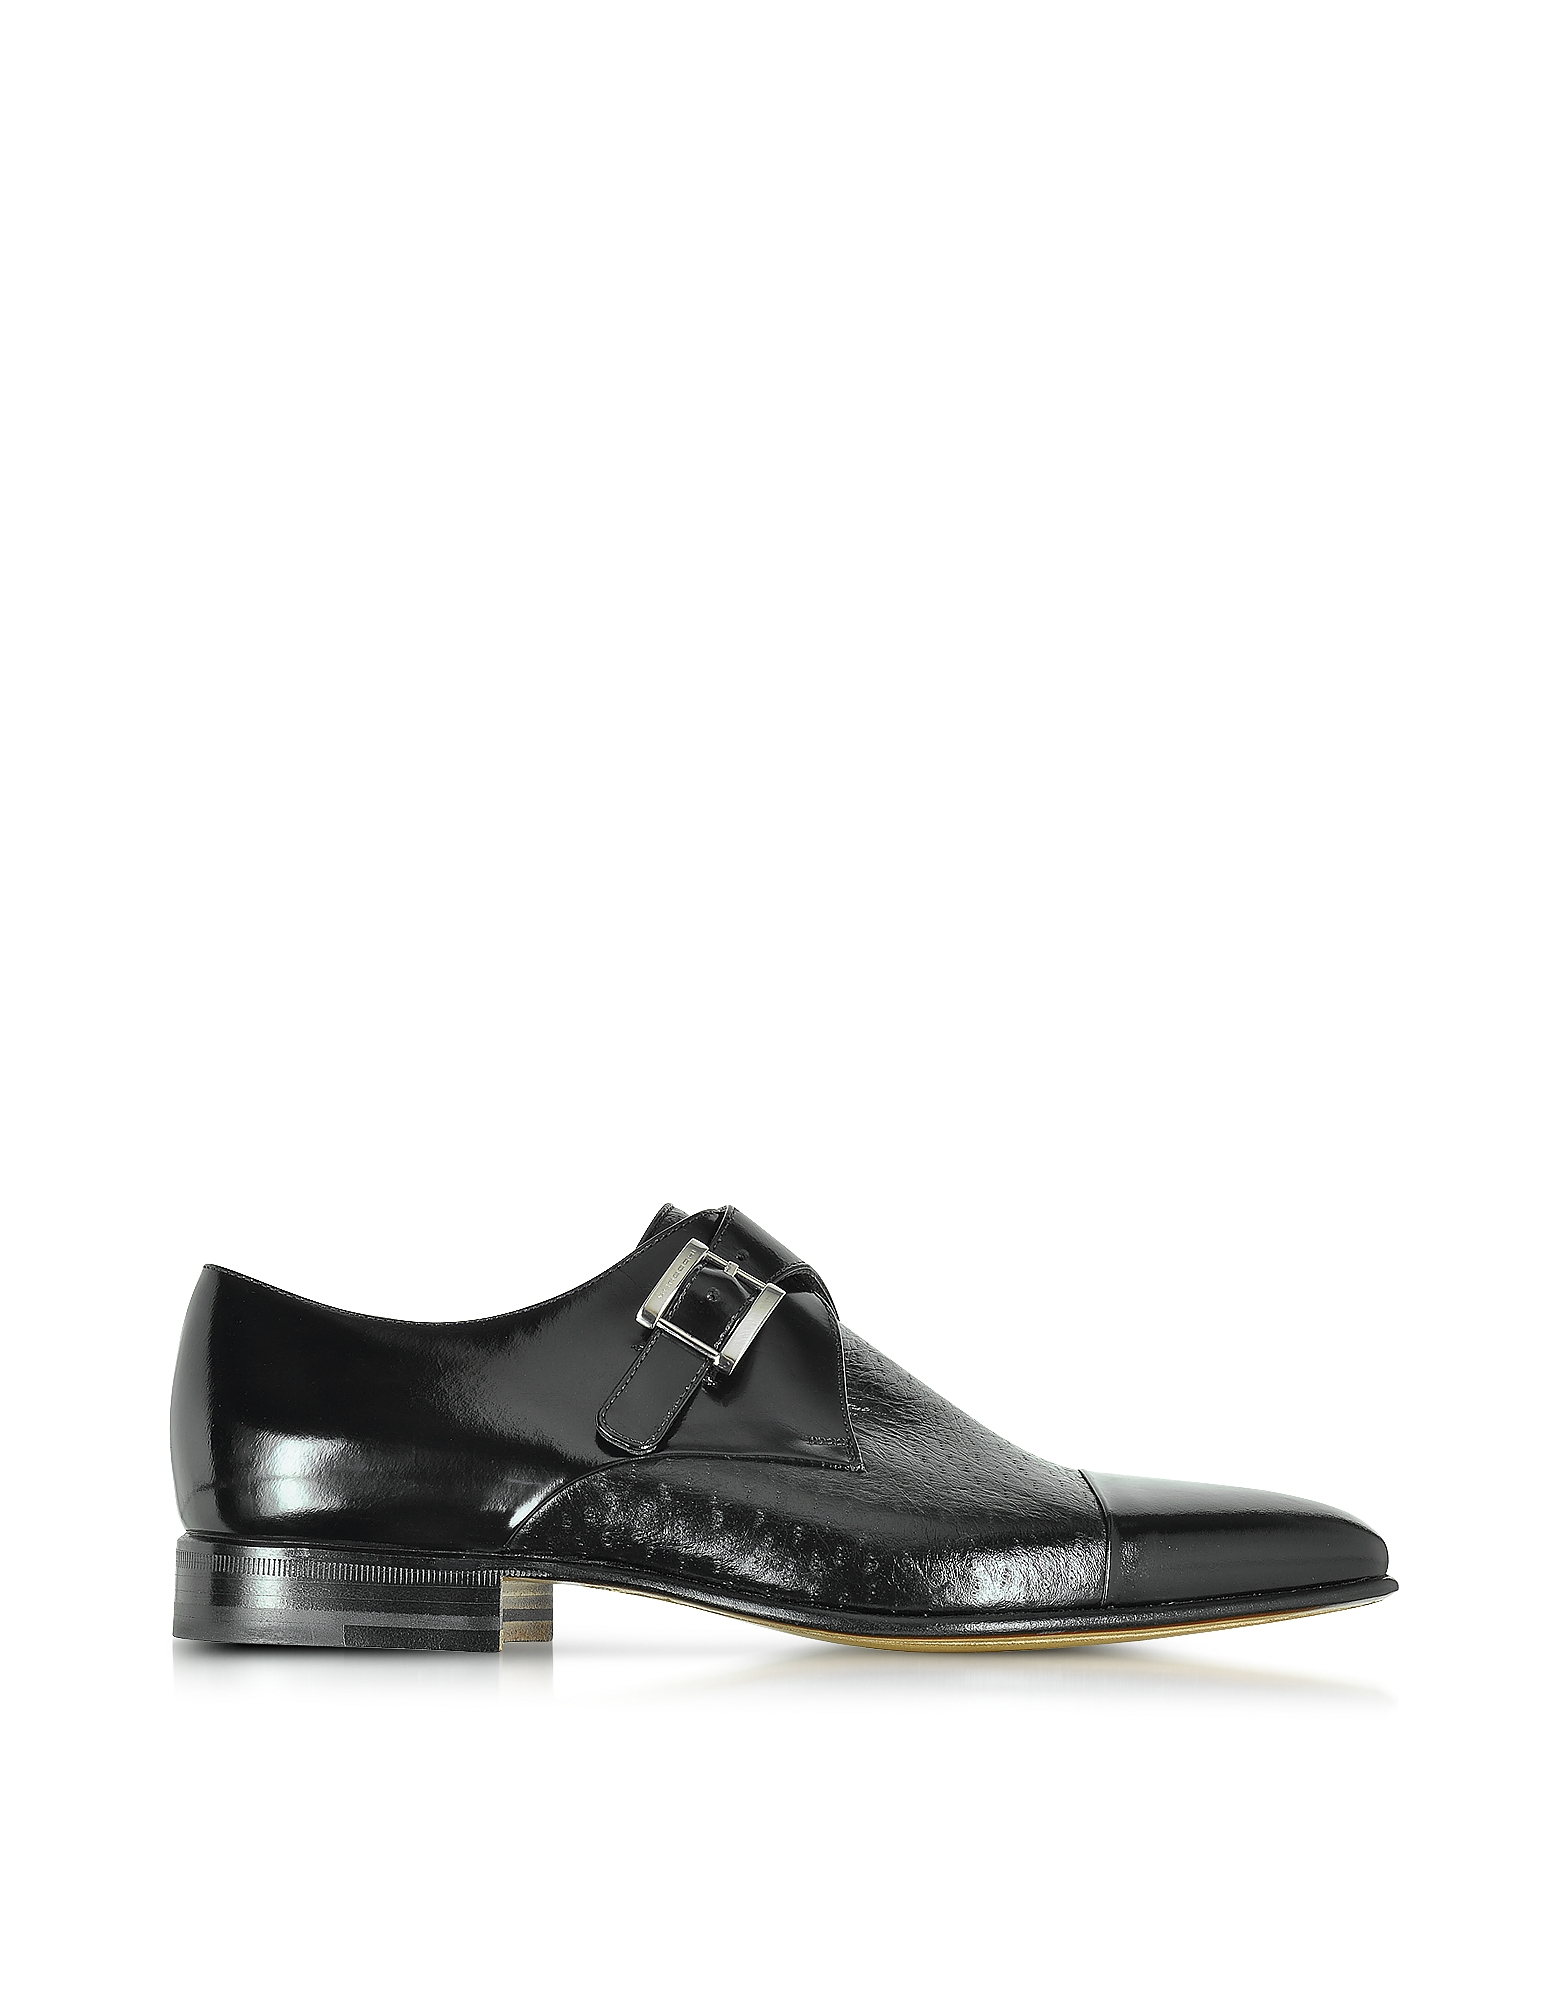 Moreschi Shoes, Nancy Black Peccary Leather Monk Strap Shoe